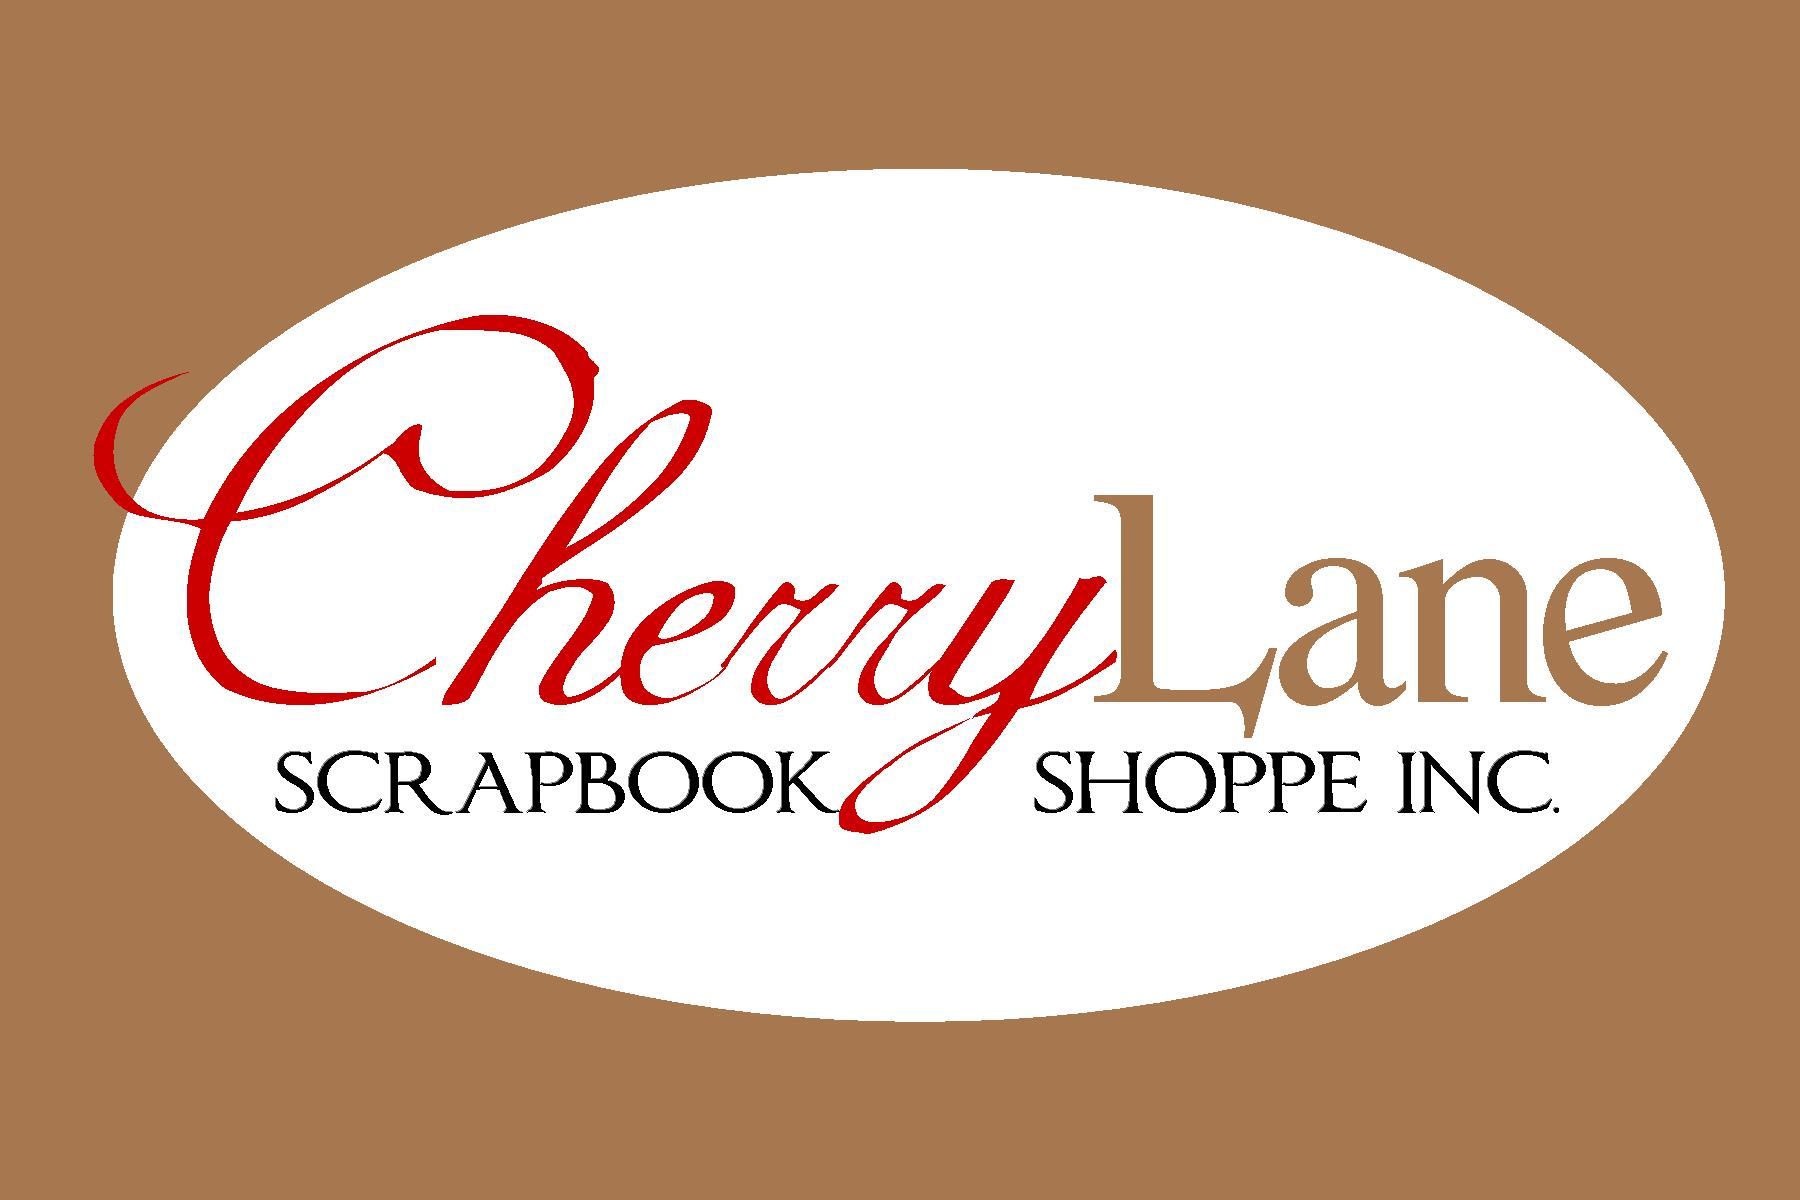 Cherry Lane Scrapbook Shoppe Inc.